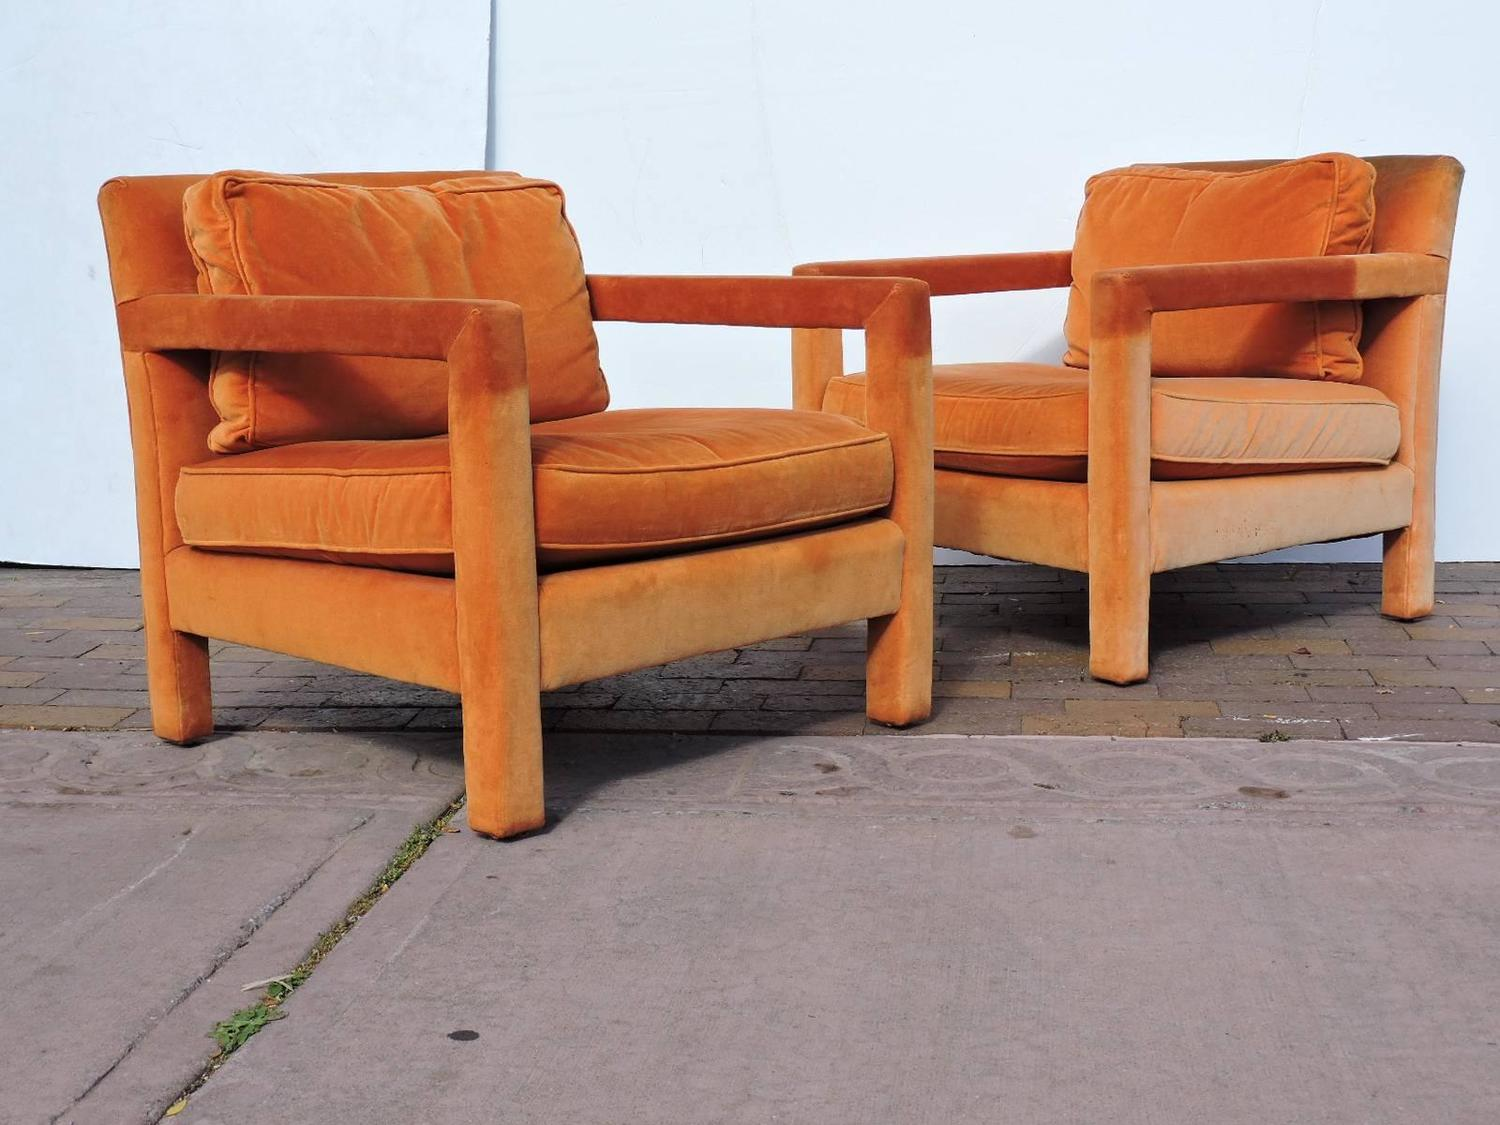 orange parsons chair pub table and chairs 3 piece set upholstered lounge in the style of